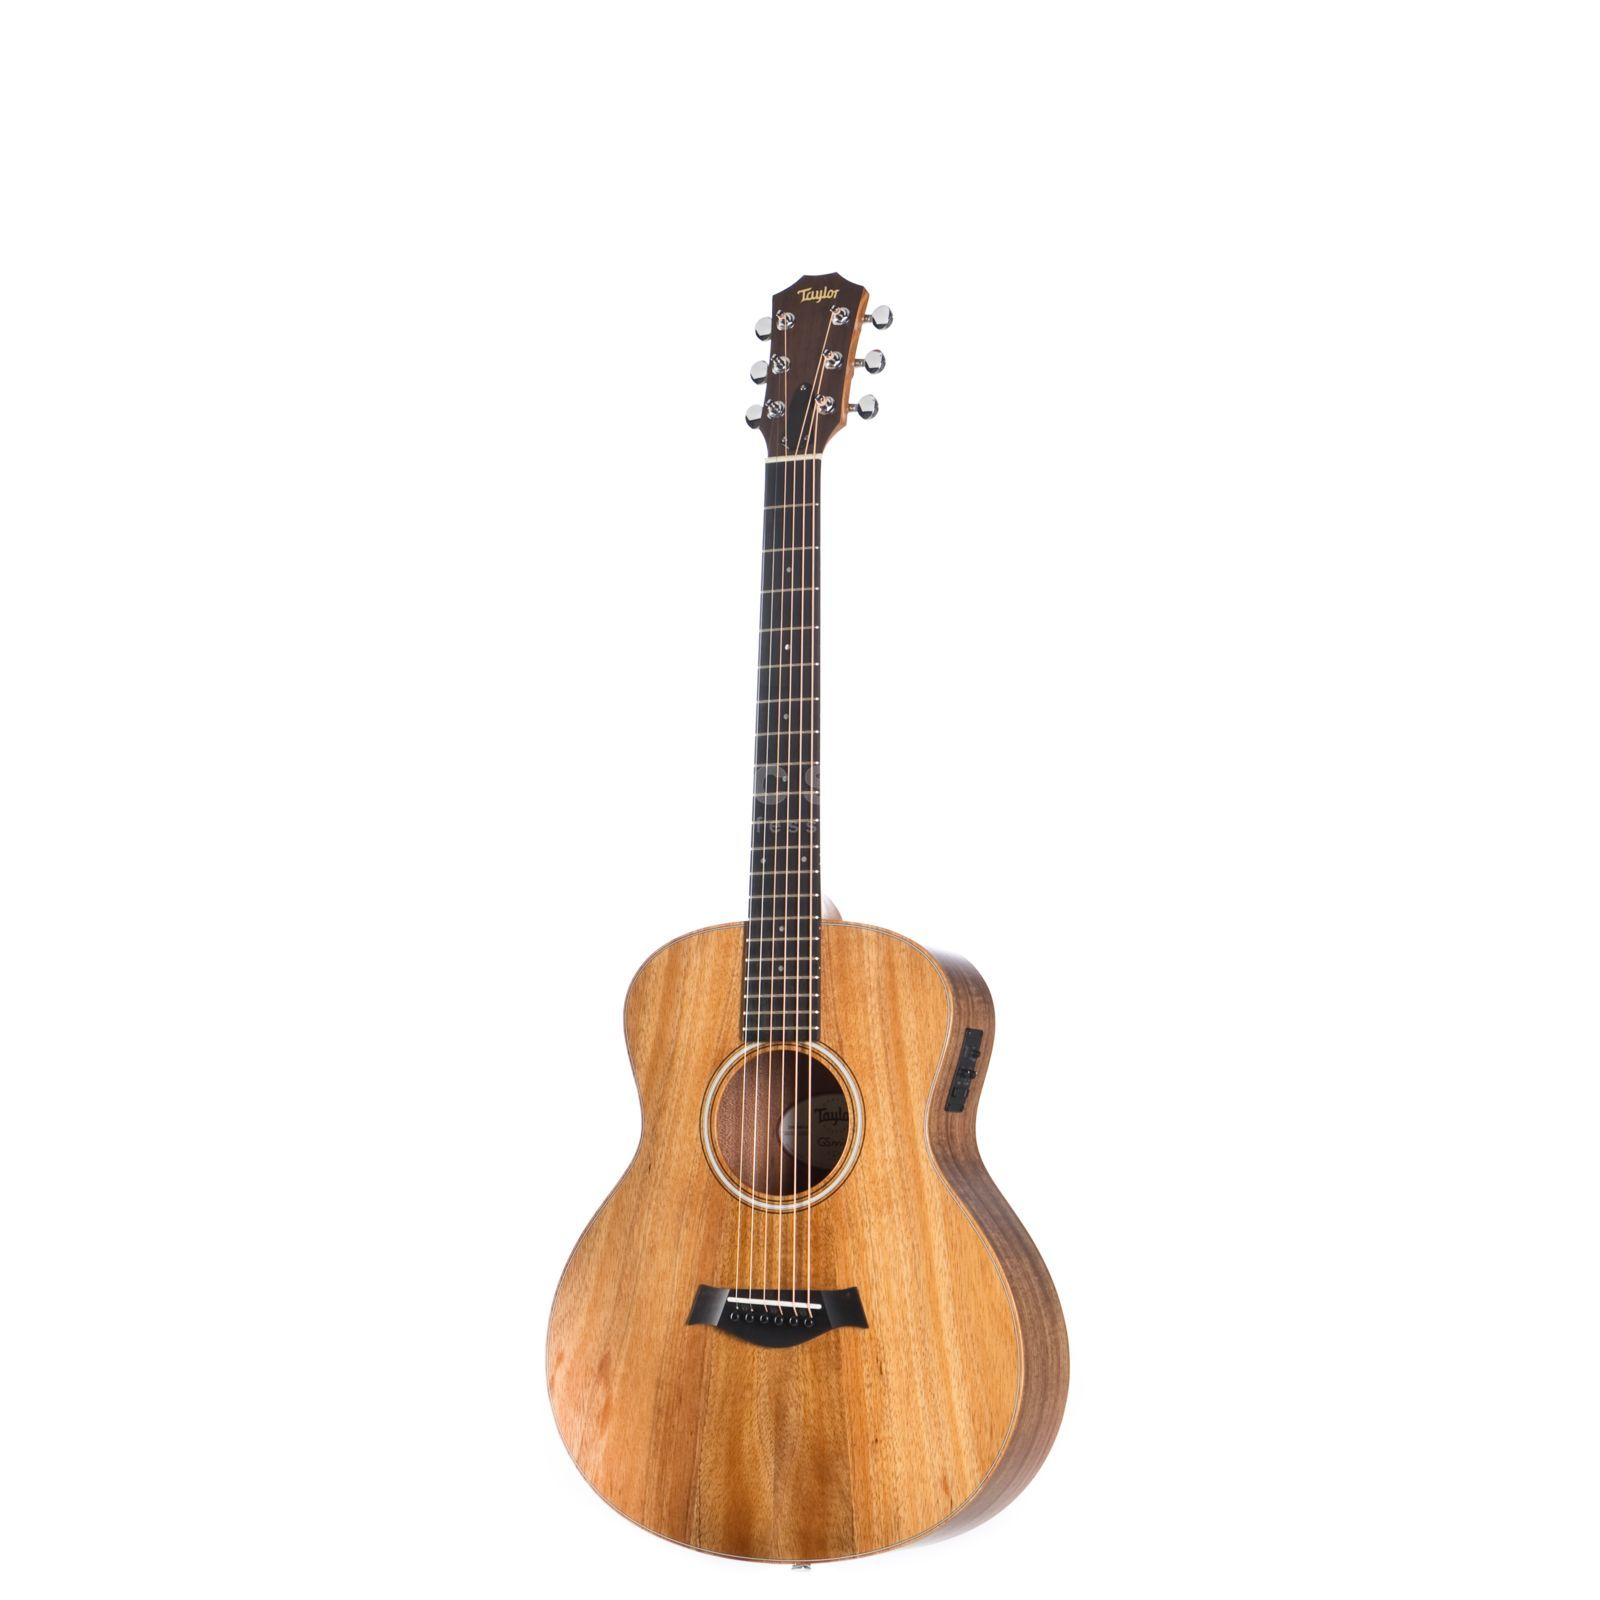 Taylor GS Mini-e Koa Natural Lefthand Image du produit